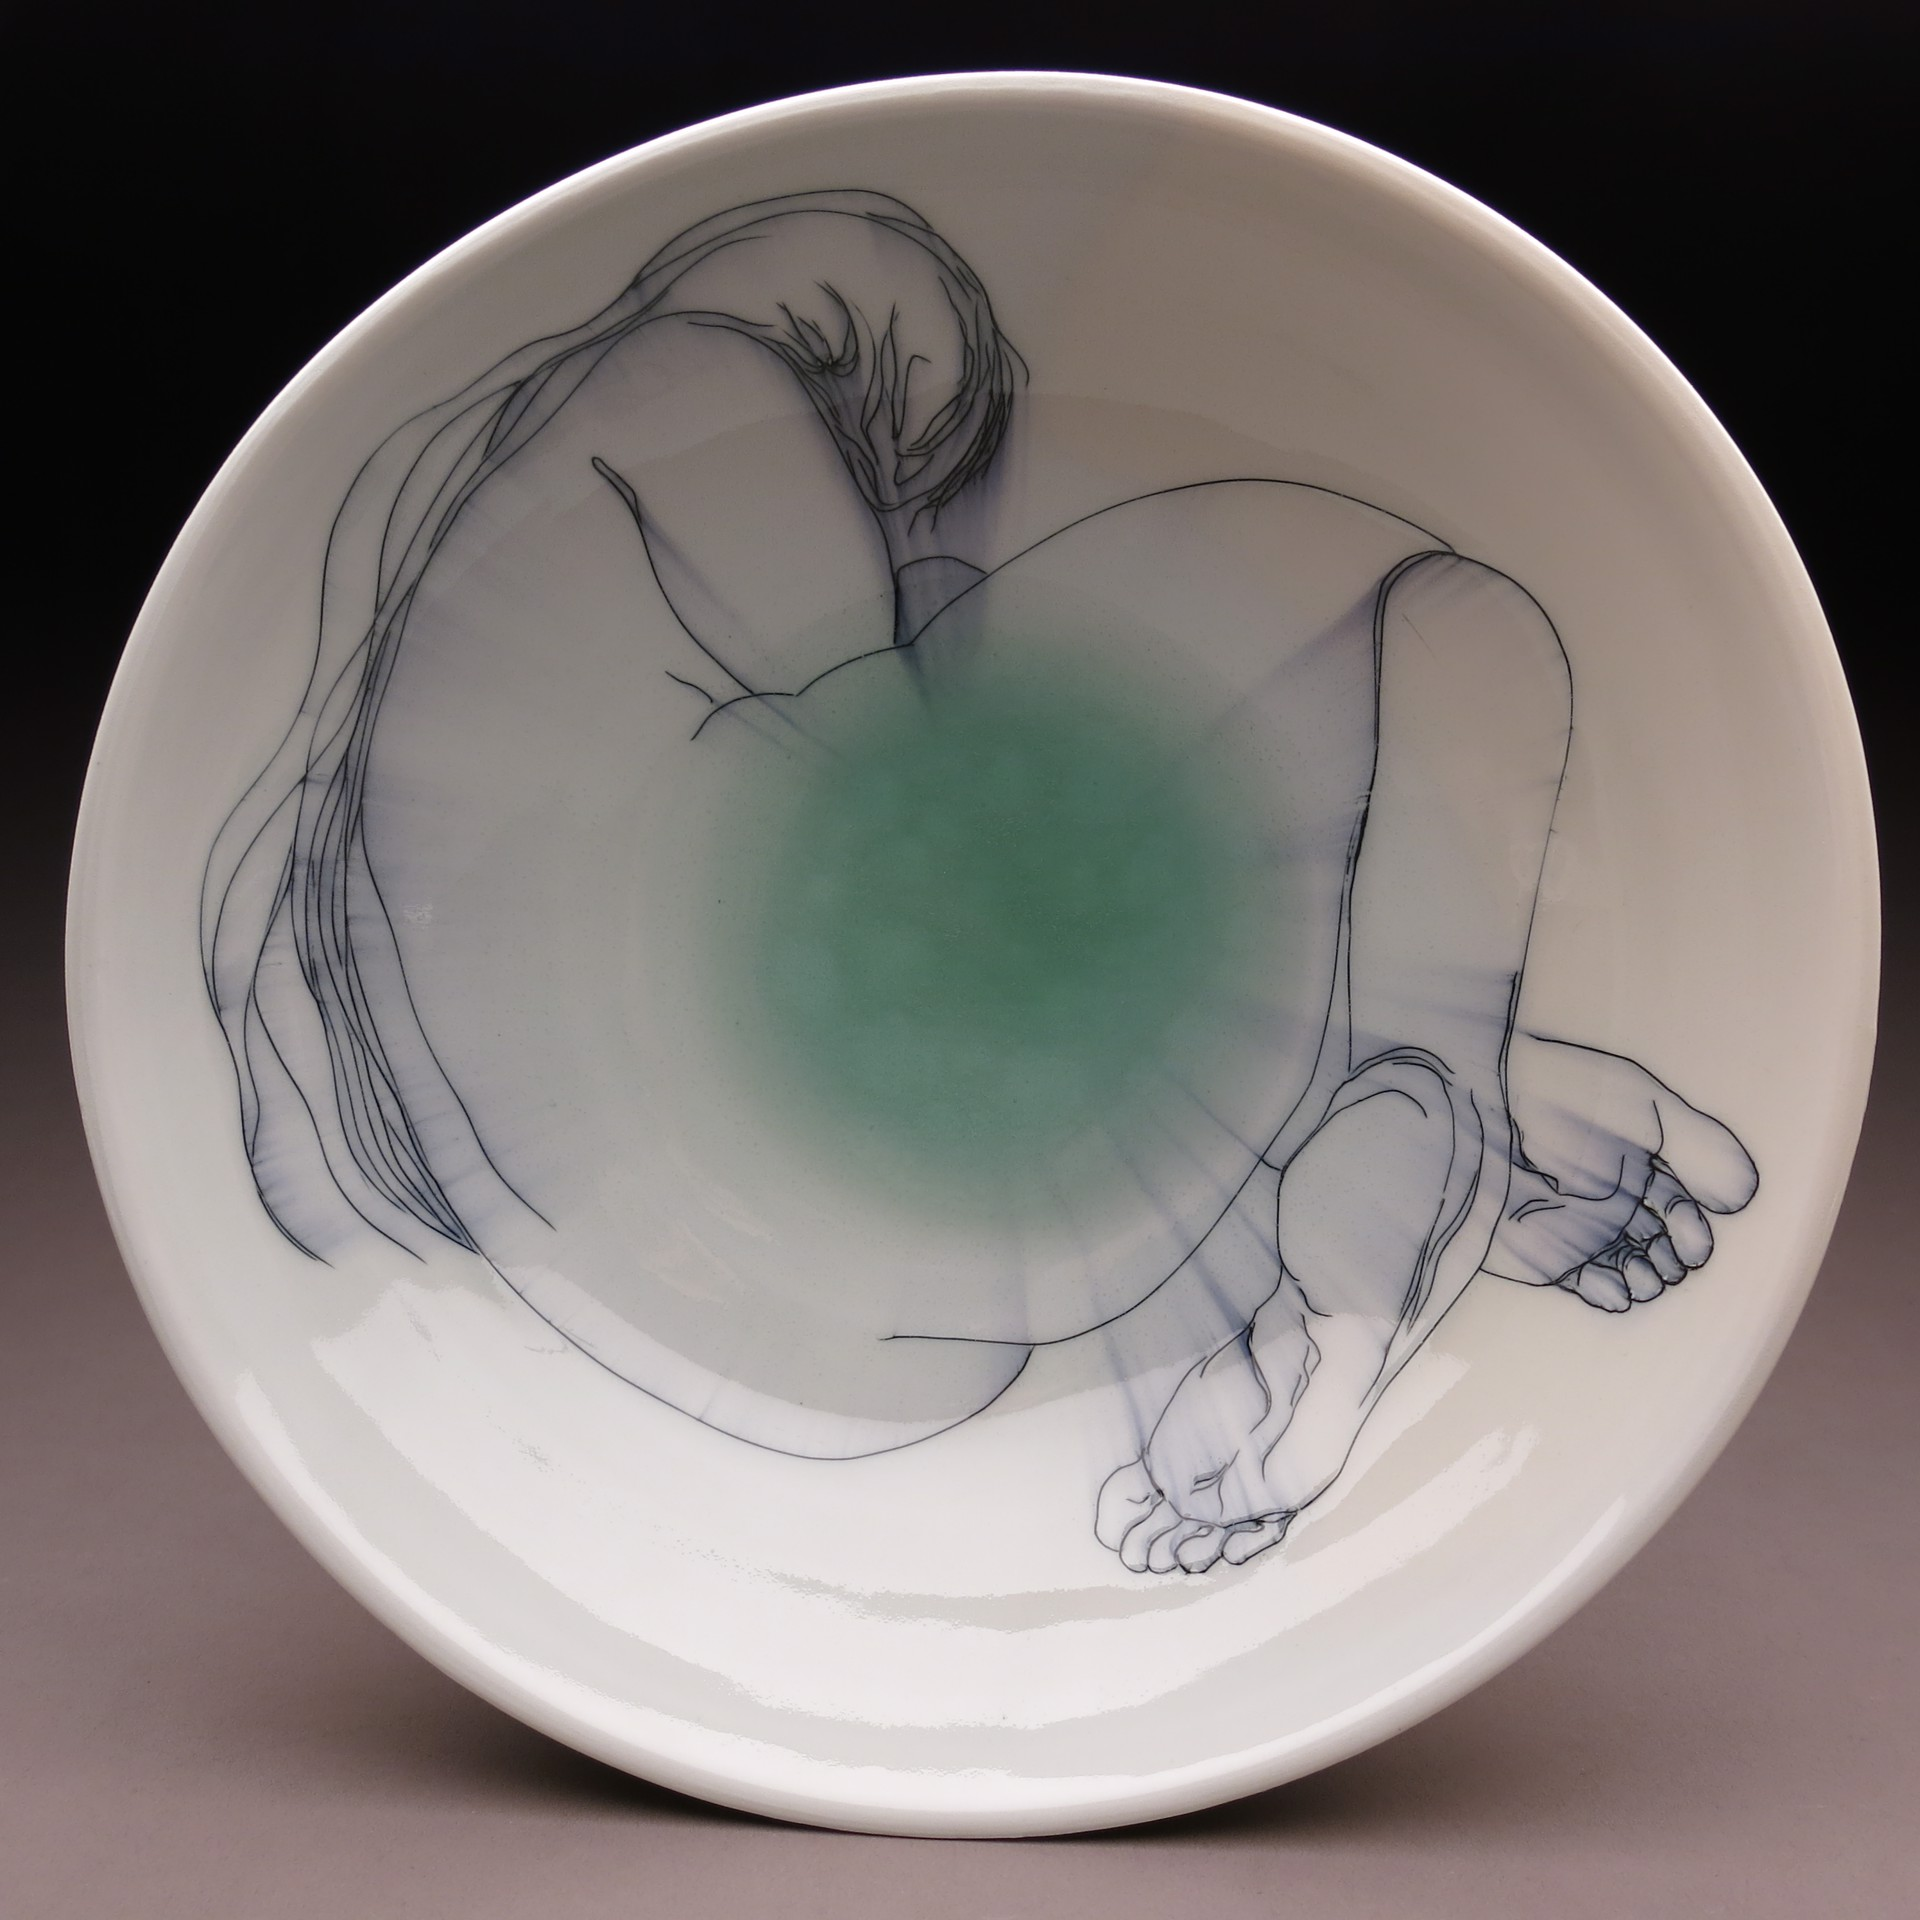 Figurative Bowl - Large by Amy Smith